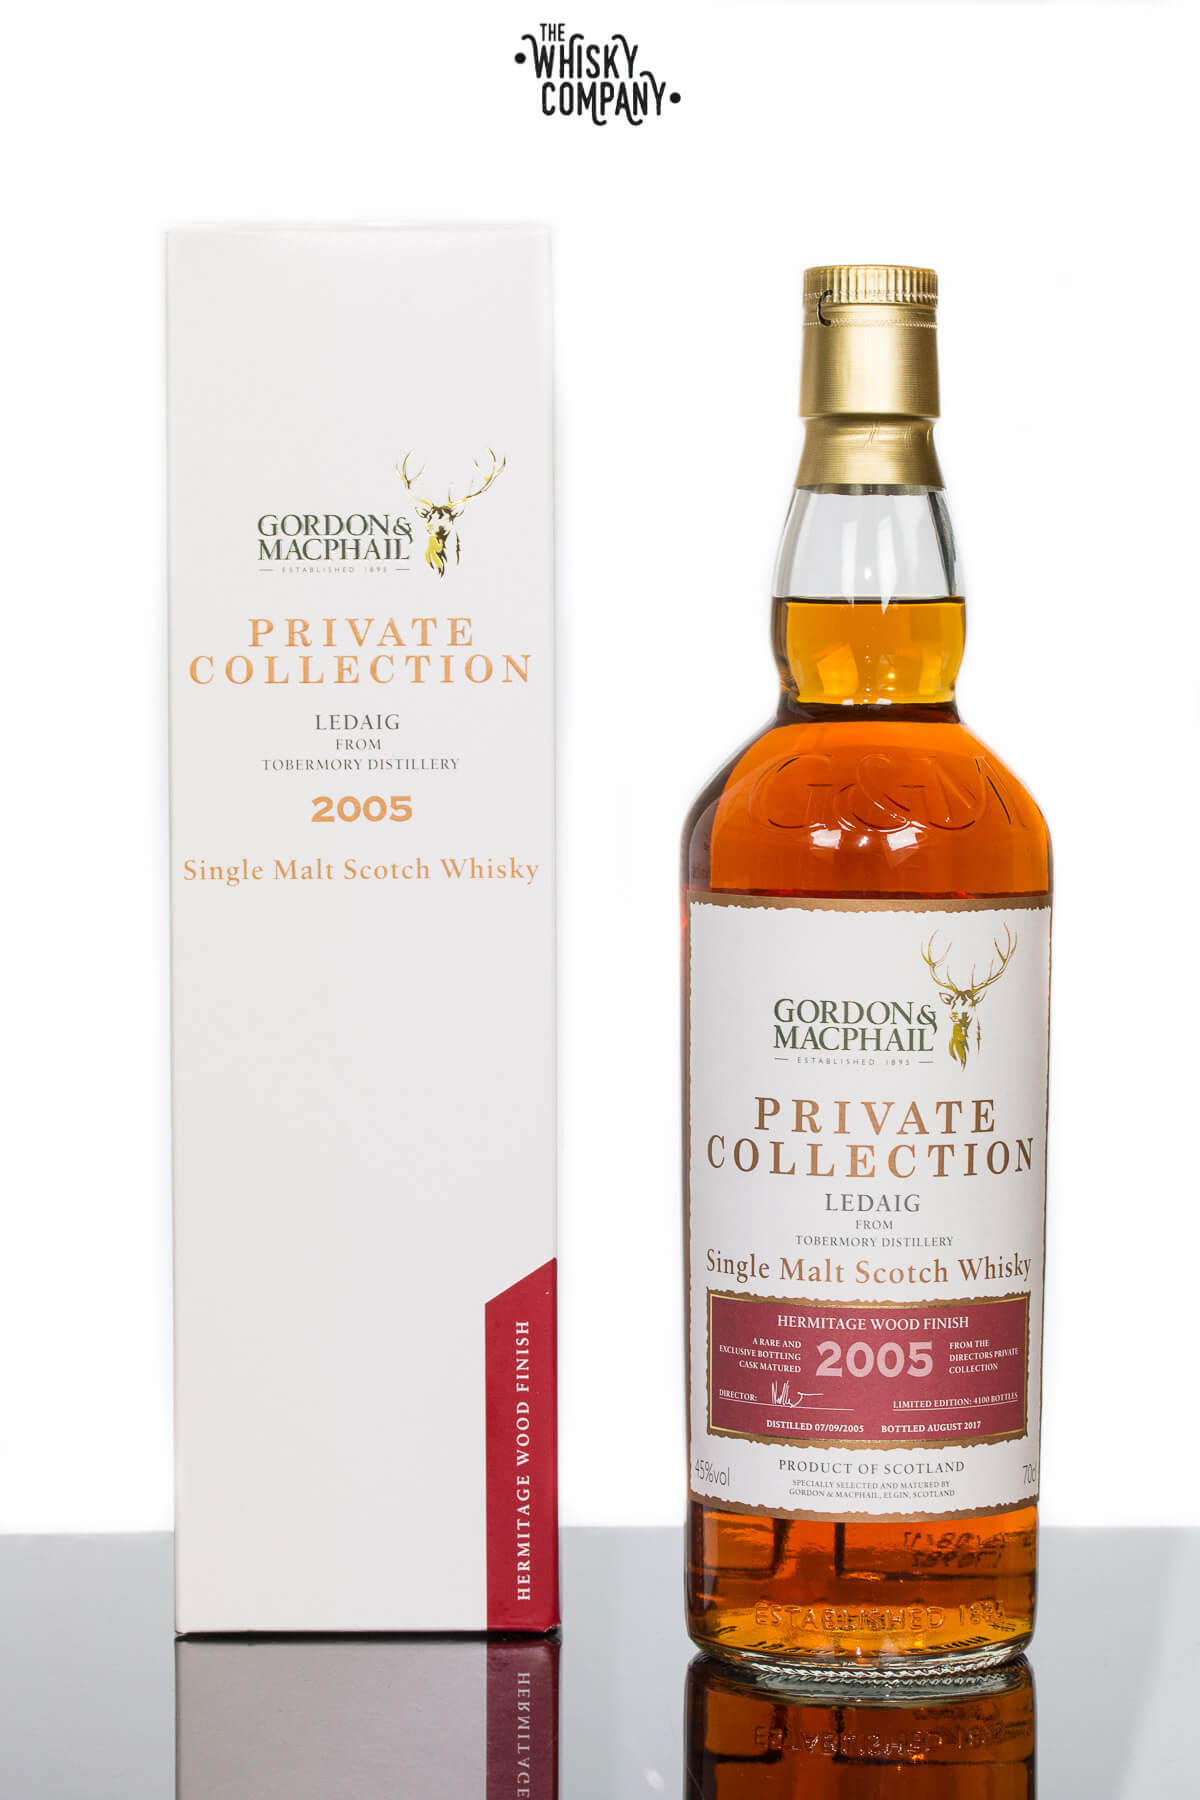 Gordon & MacPhail 2005 Ledaig Hermitage Wood Finish Private Collection Single Malt Scotch Whisky 700ml